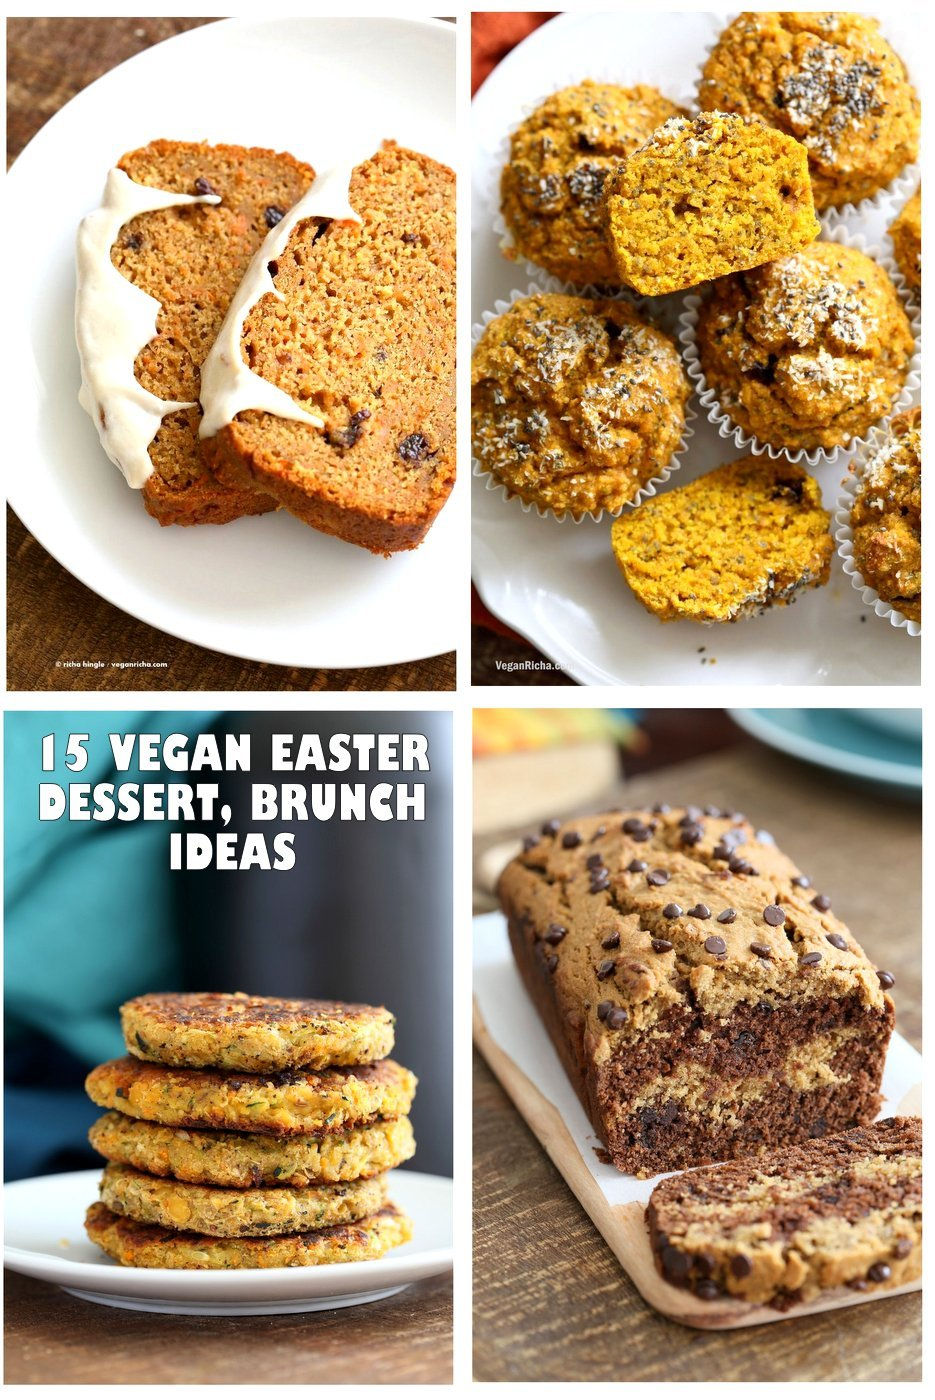 15 Vegan Easter Dessert and Brunch Ideas. Carrot Cake, Carrot Cake Pancakes, Nut Butter Marble Cake, Chickpea carrot pancakes, Almond joys, Frittatas and more. #vegan #glutenfree #veganricha